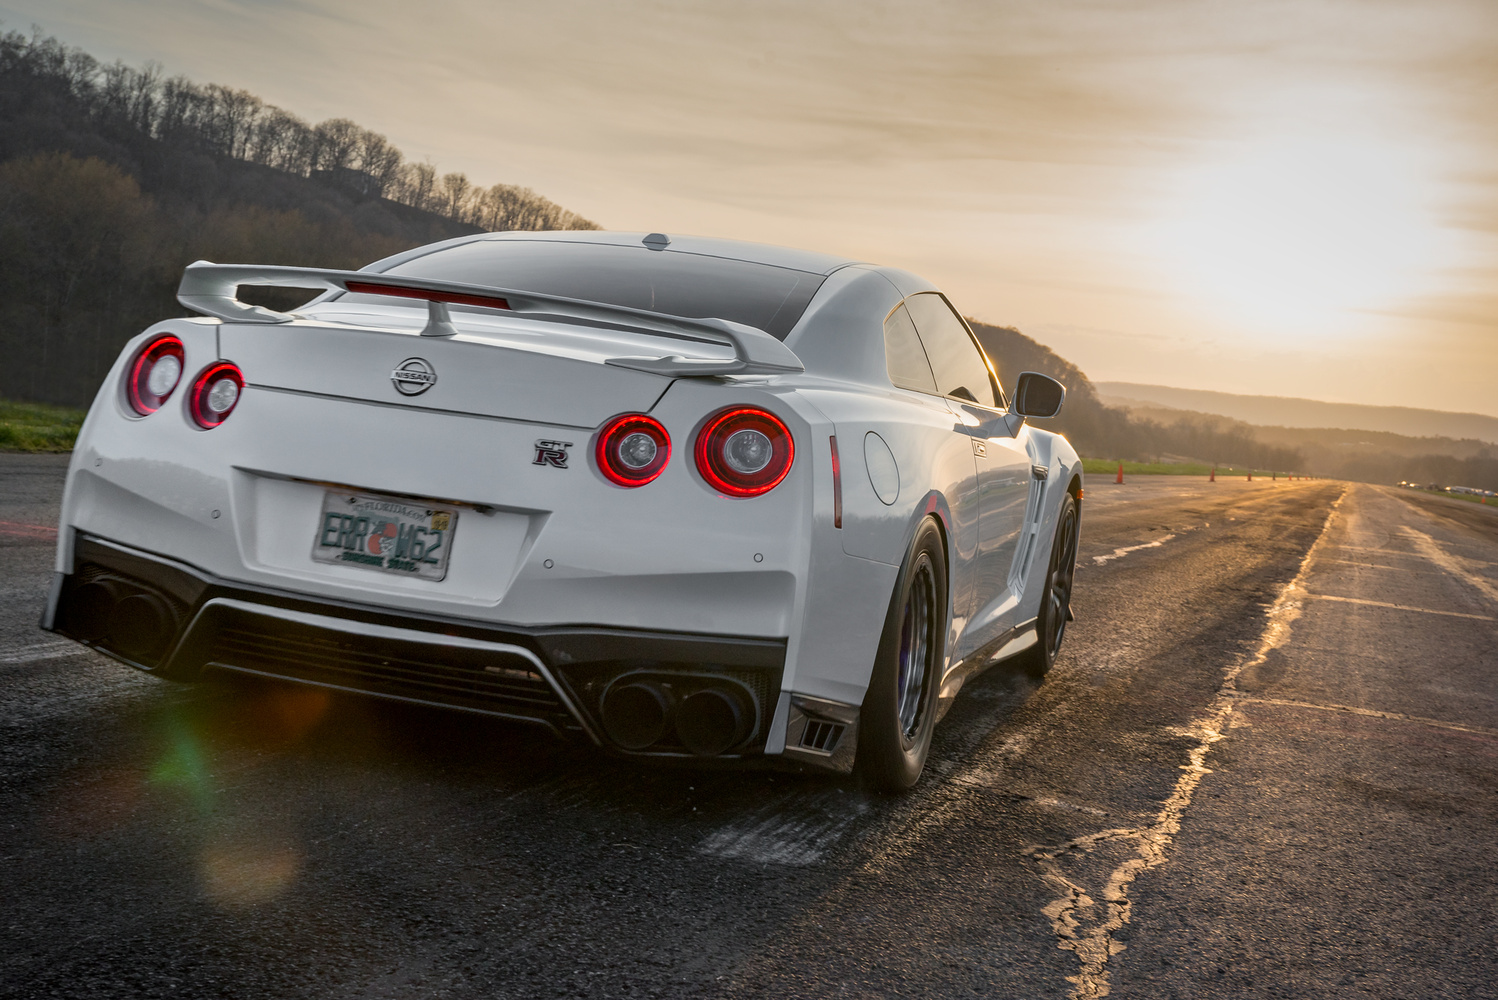 GTR launching into sunset by David Stuckey